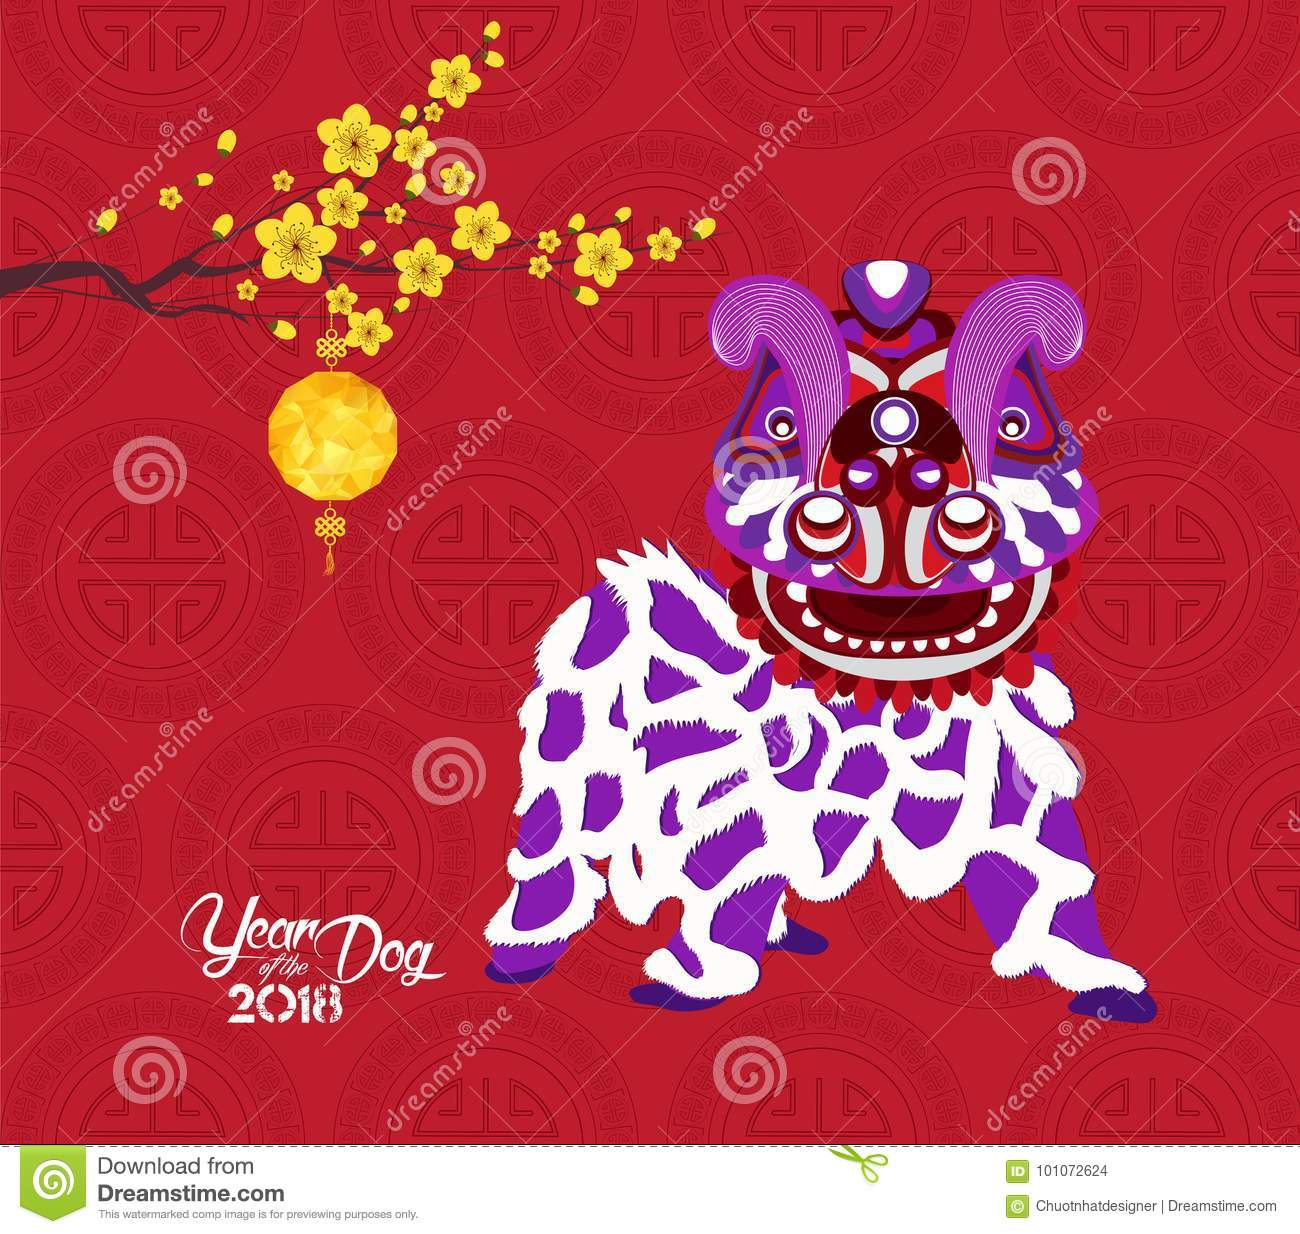 Chinese new year 2018 lantern, blossom and lion dance. Year of the dog